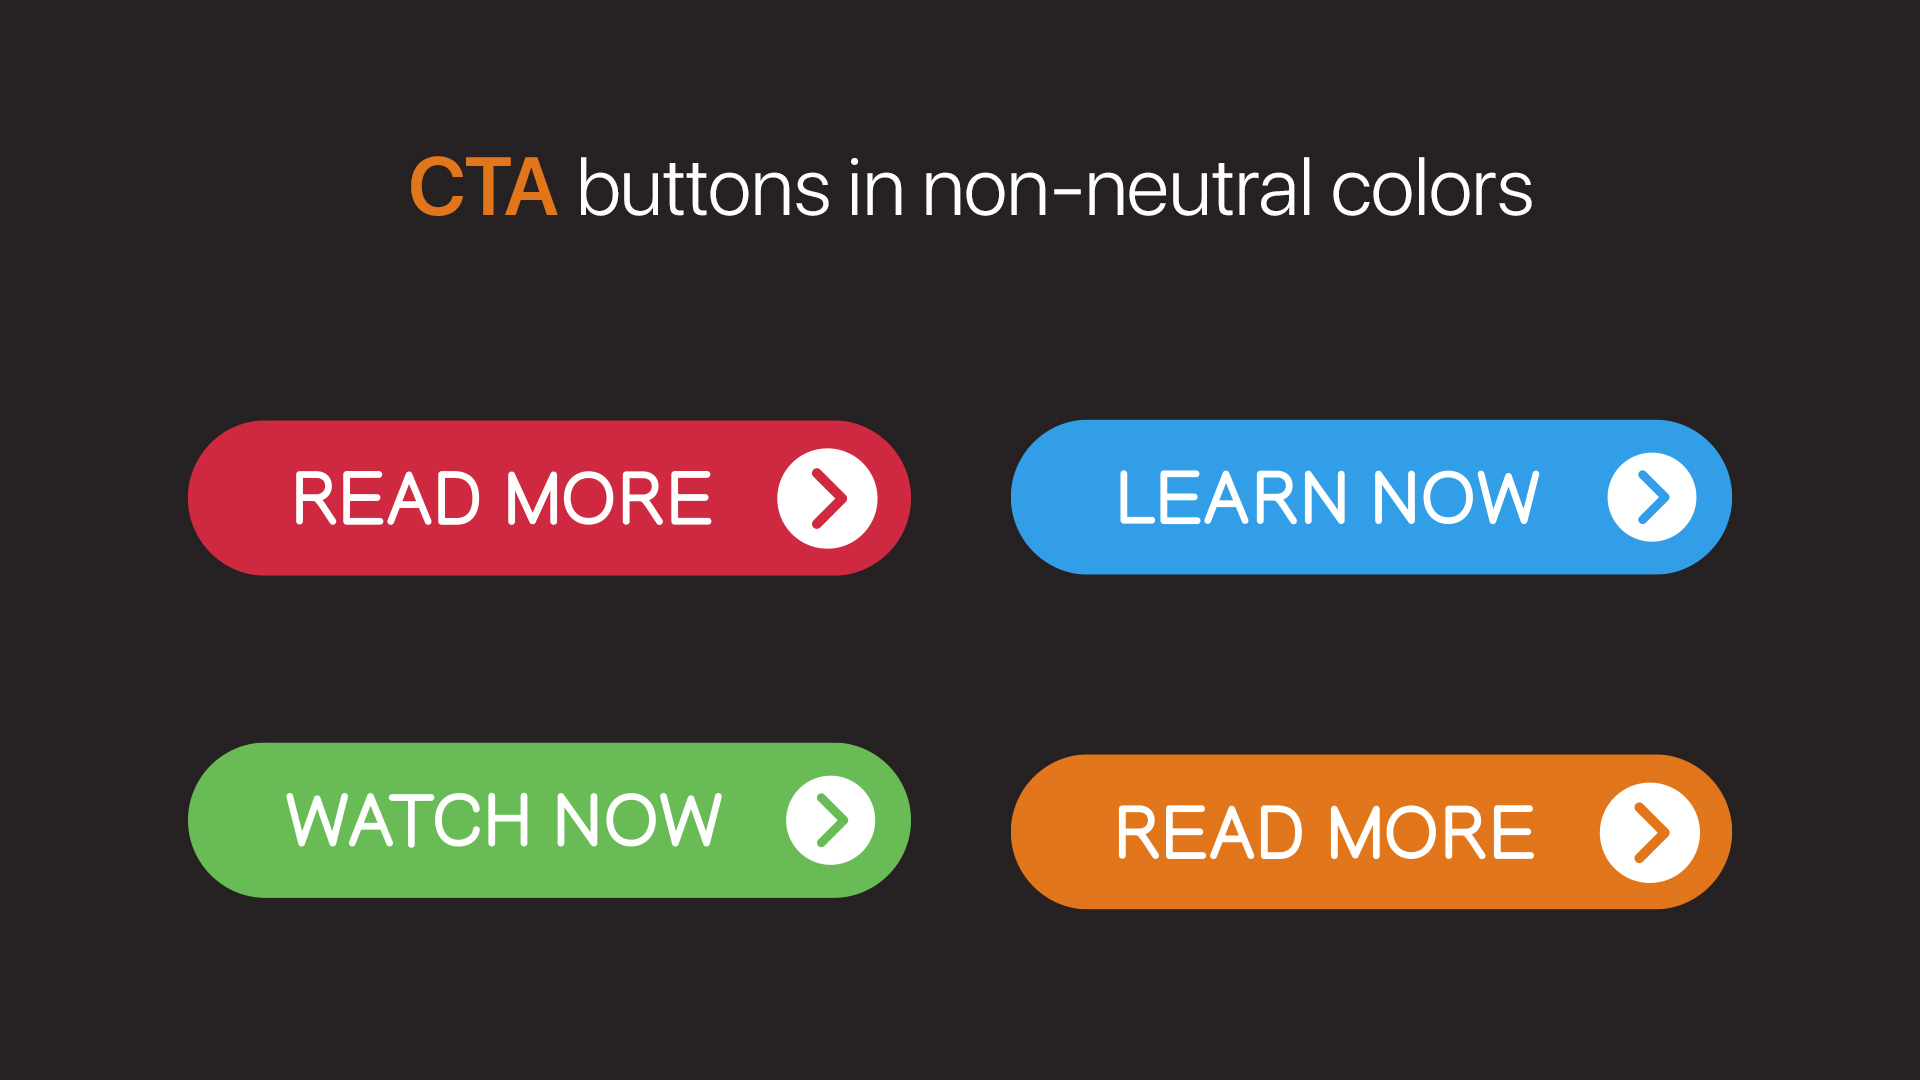 CTA buttons with non-neutral colors as background